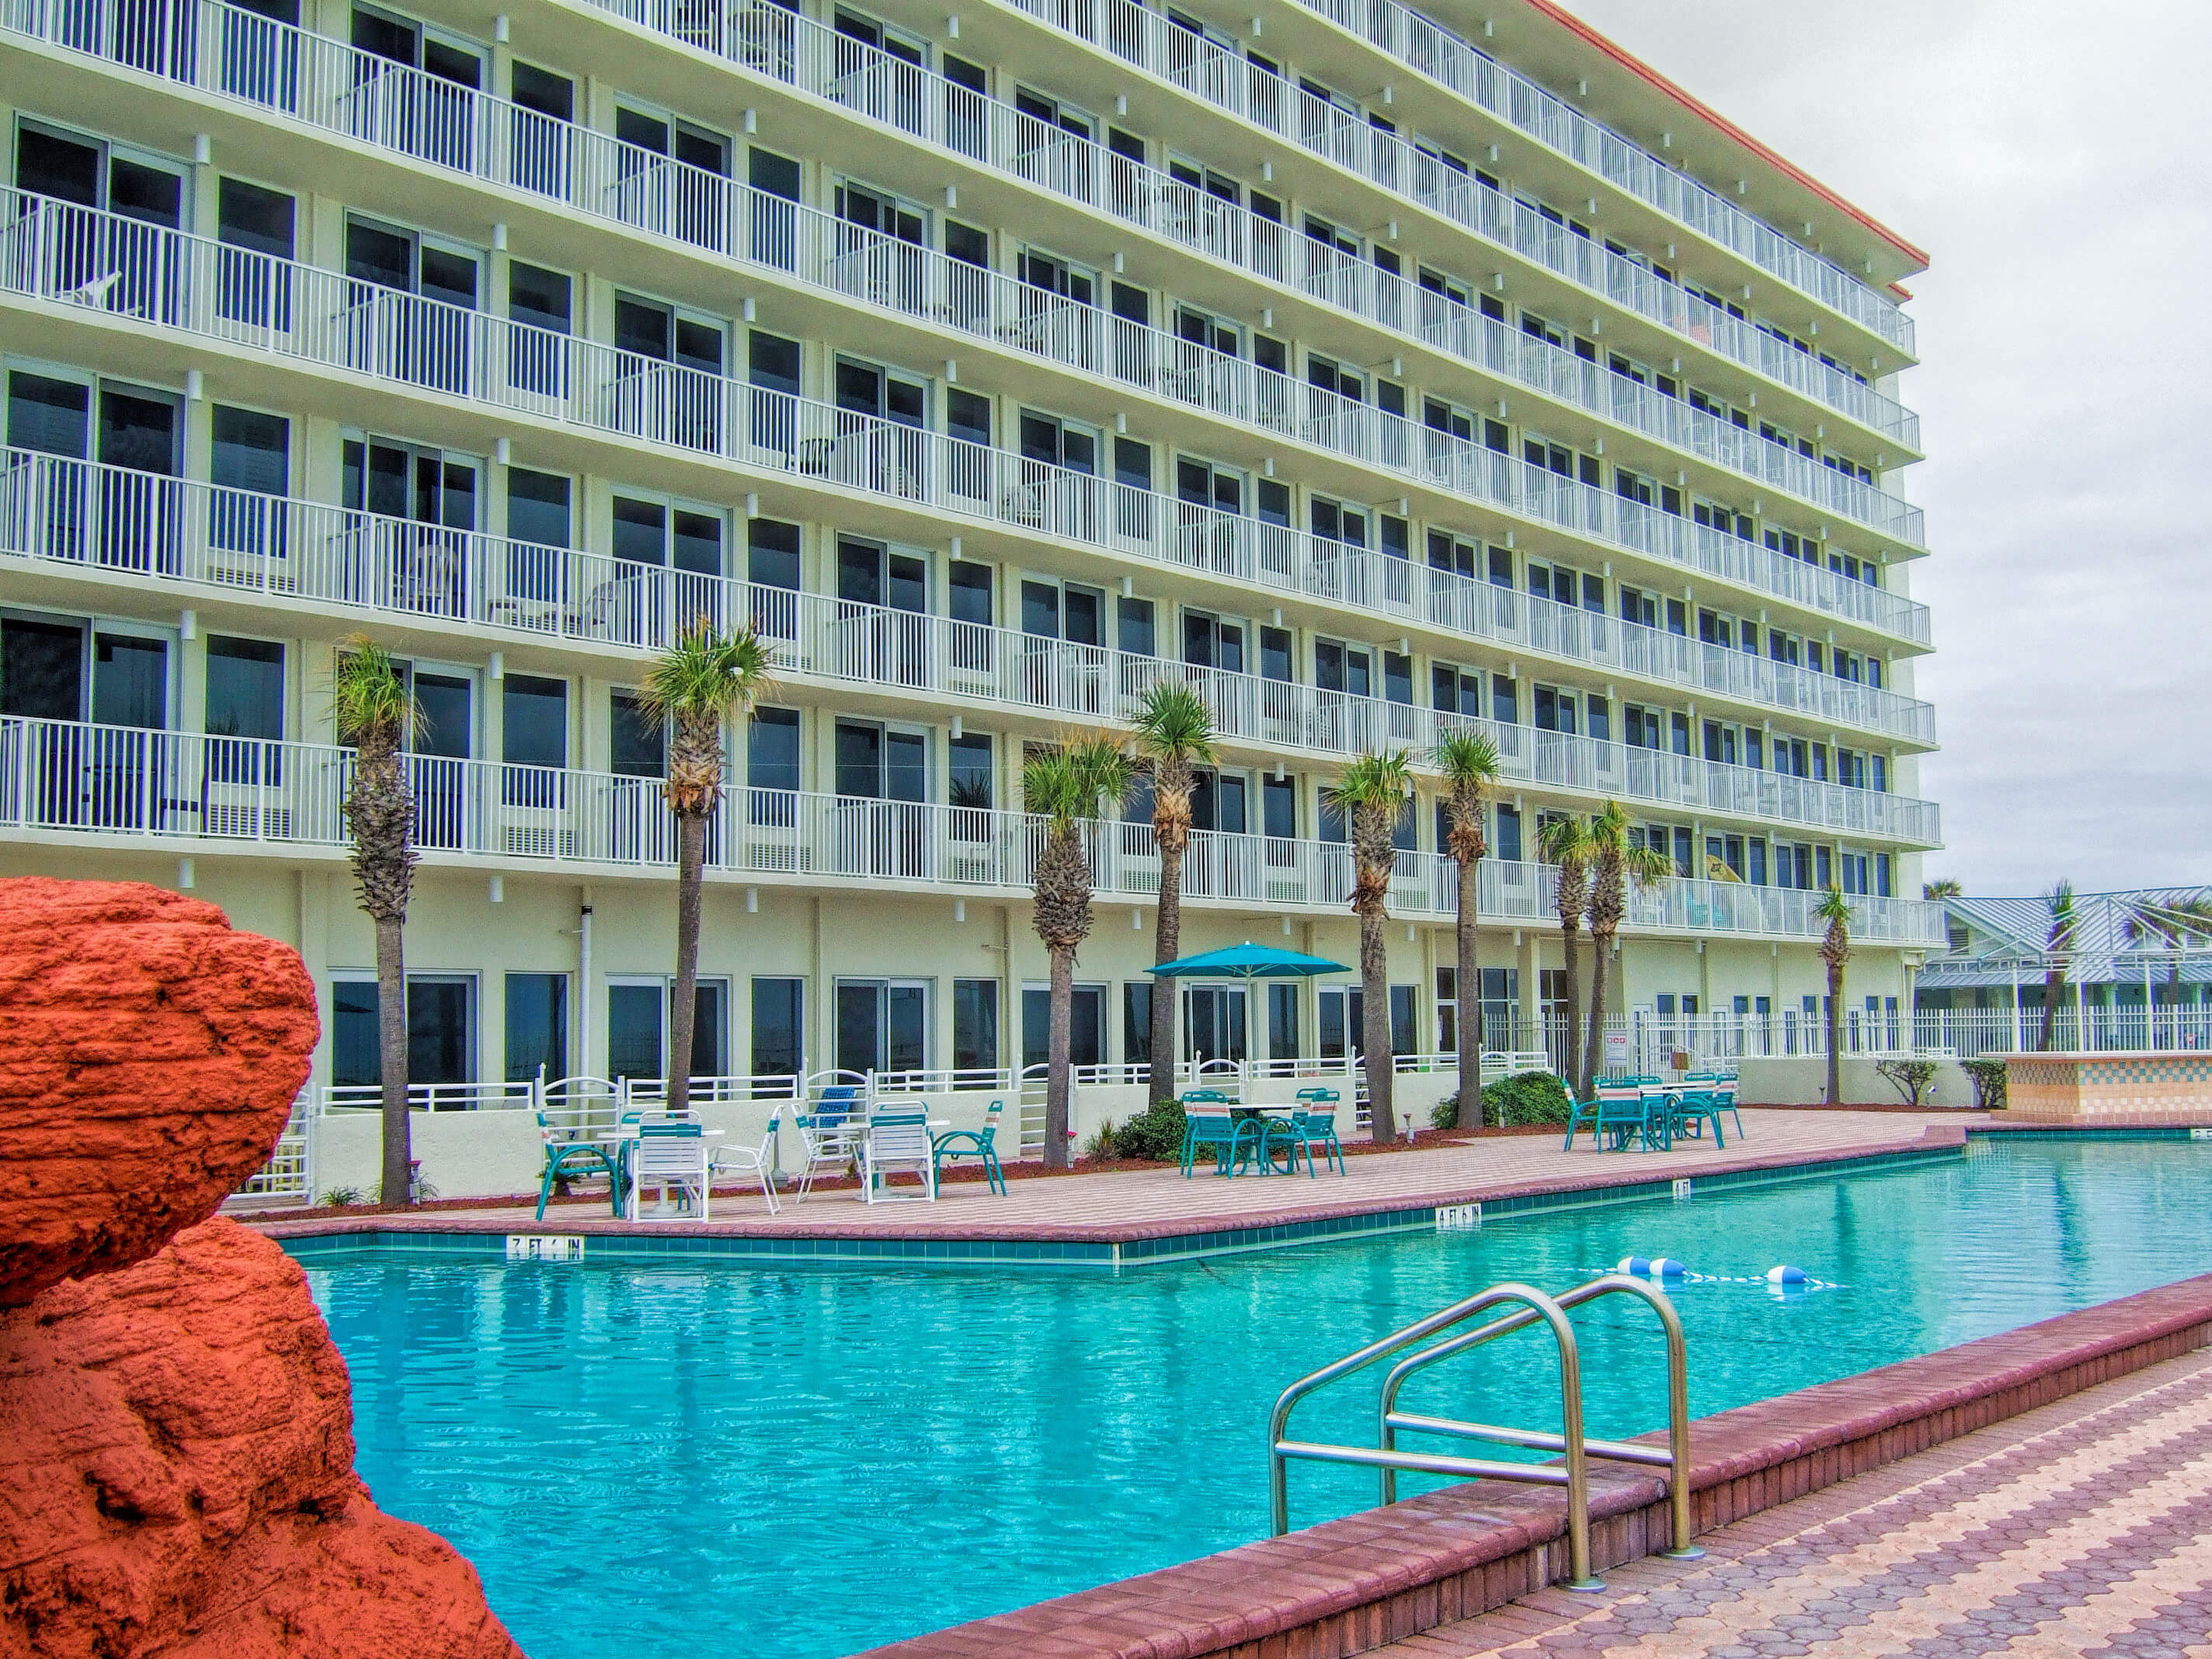 Westgate Resorts | Heated outdoor pool at Daytona Beach resort | Harbour Beach Resort